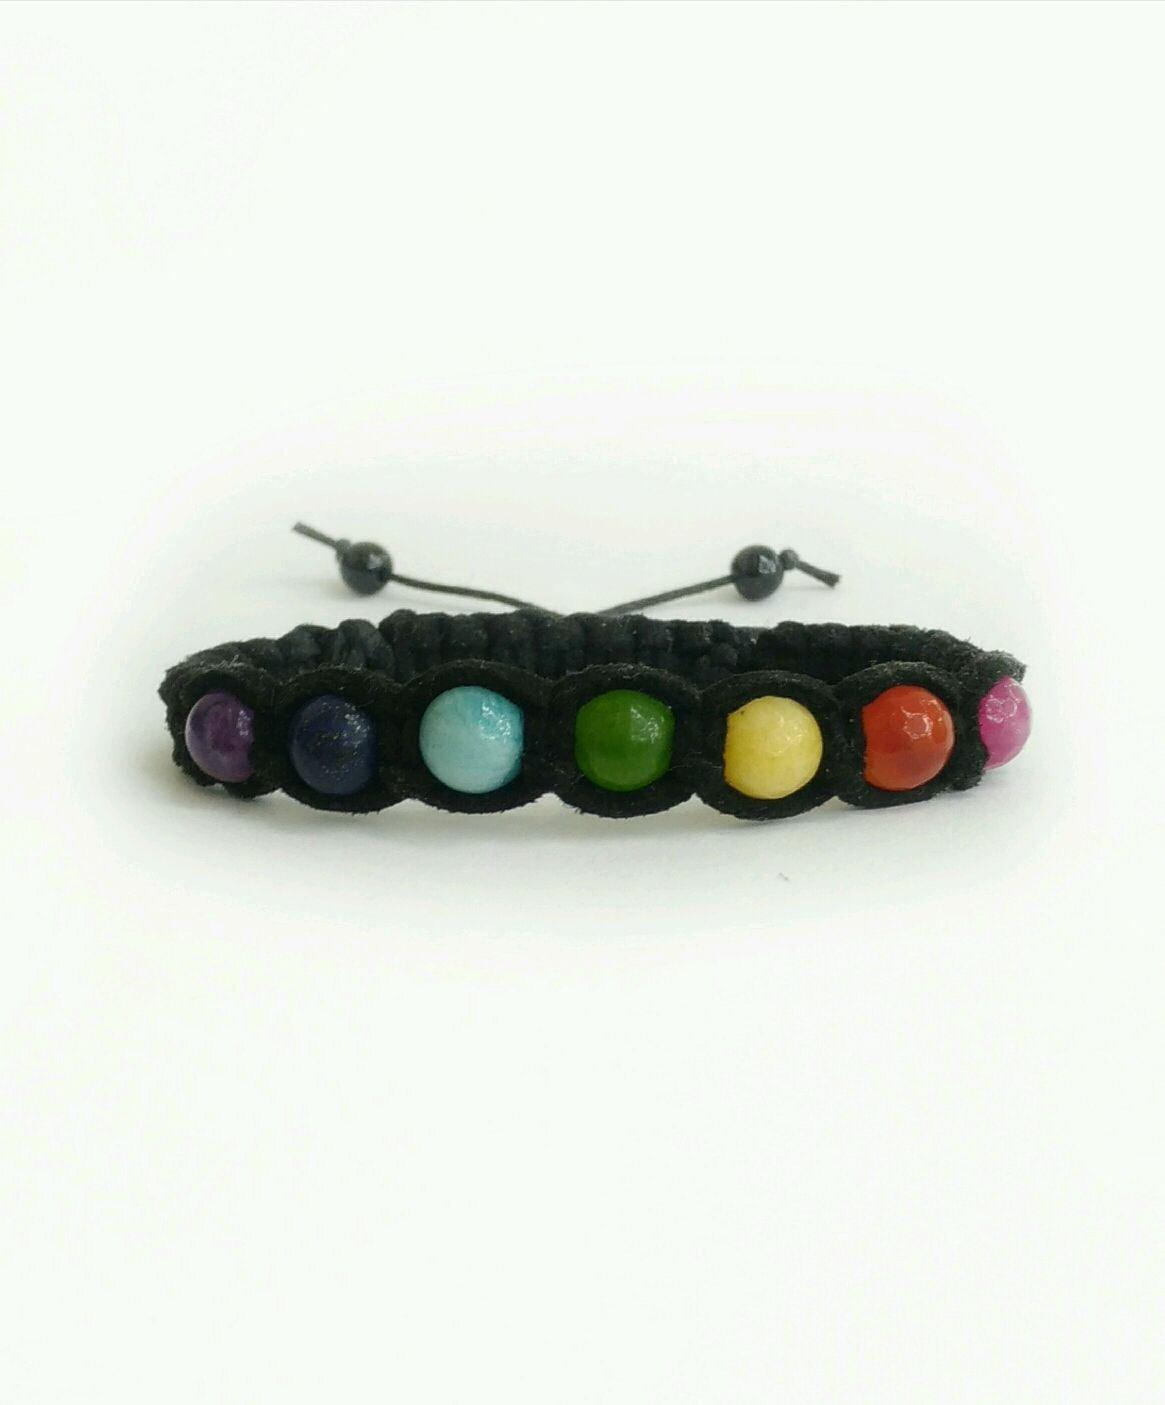 7 chakras bracelet made of natural stones in the skin, Bead bracelet, Moscow,  Фото №1